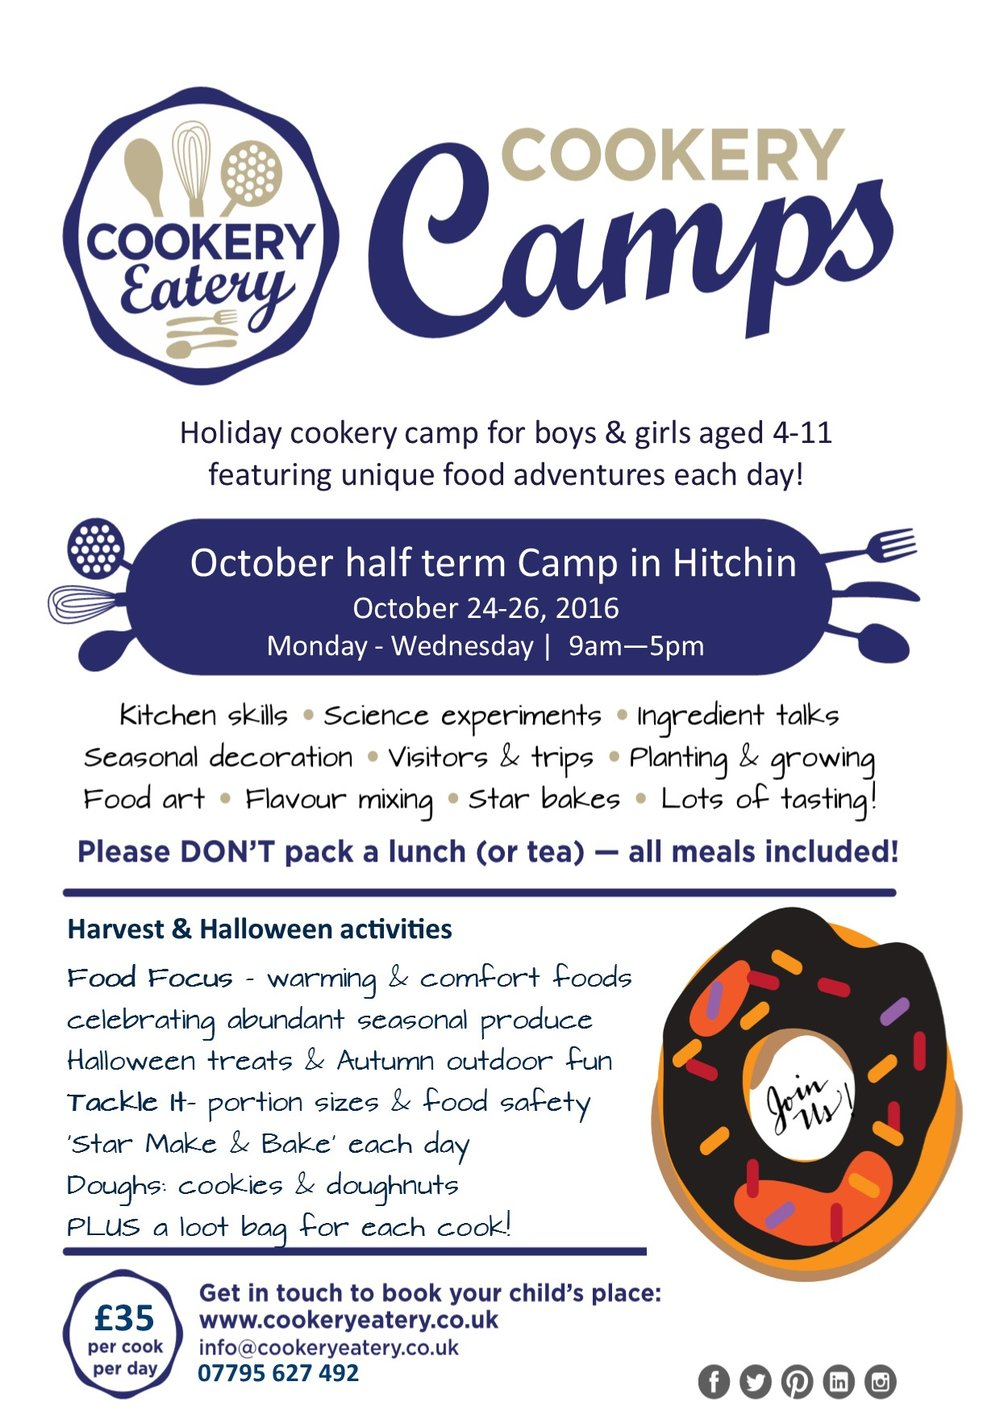 Cookery Camp.October half term 2016.Hitchin.FLYER.jpg